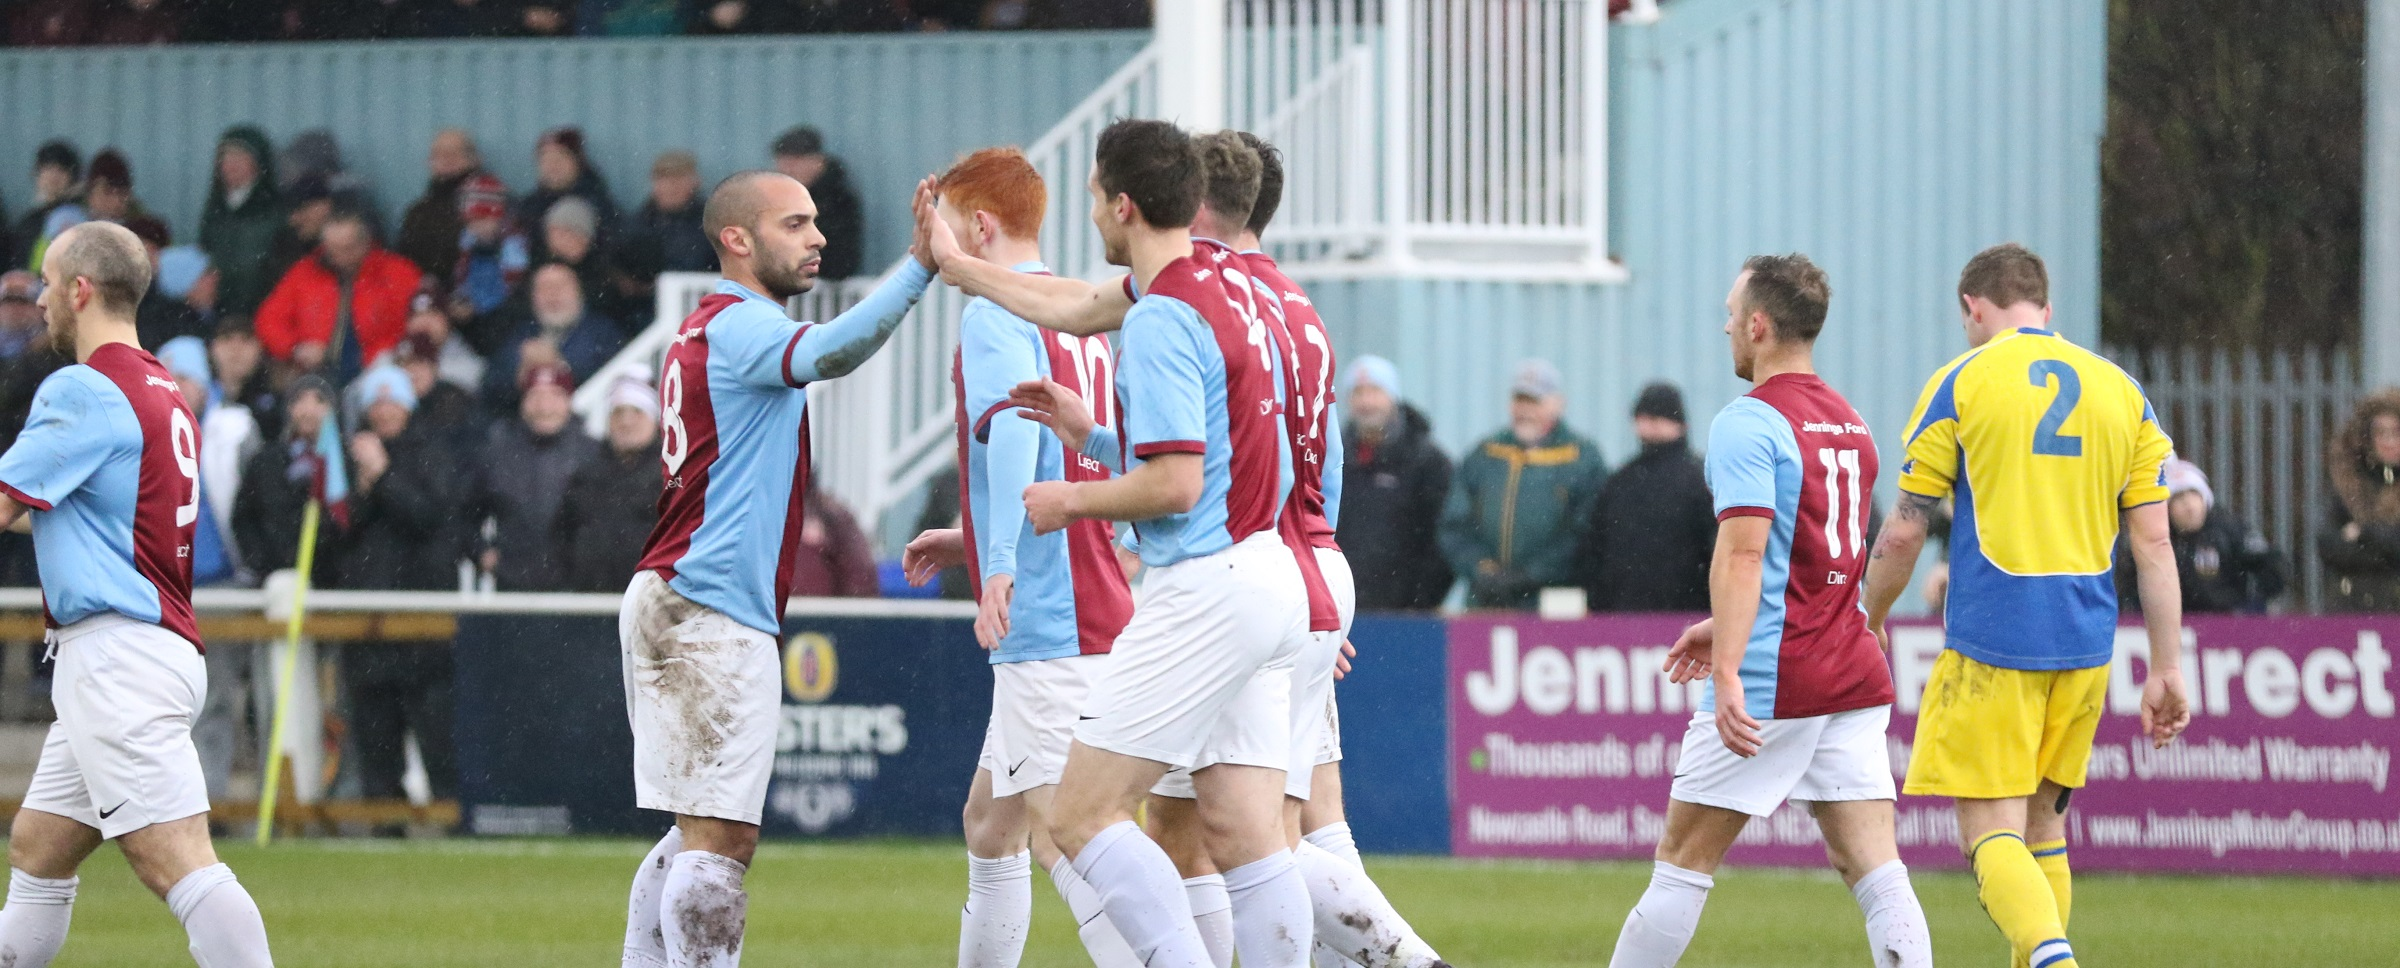 South Shields vs Chester-le-Street Town